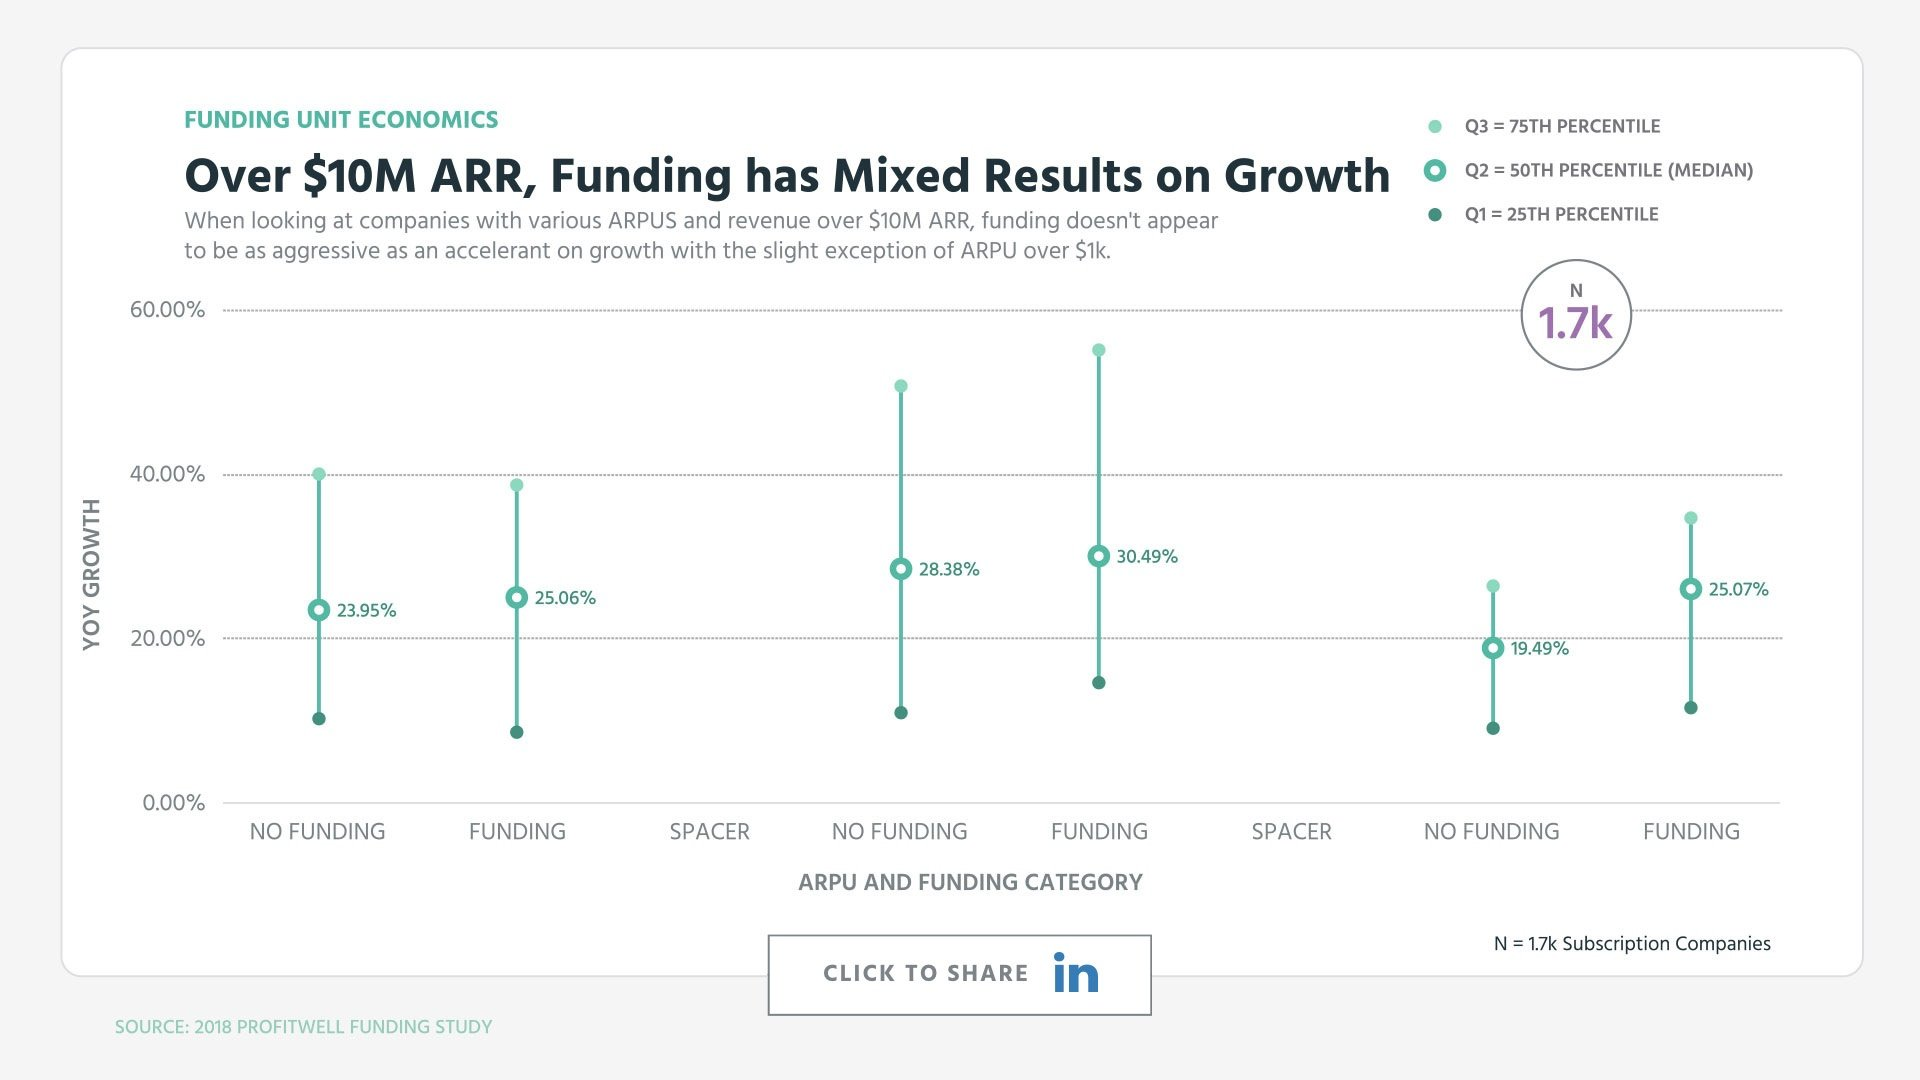 Over $10M ARR, Funding has Mixed Results on Growth